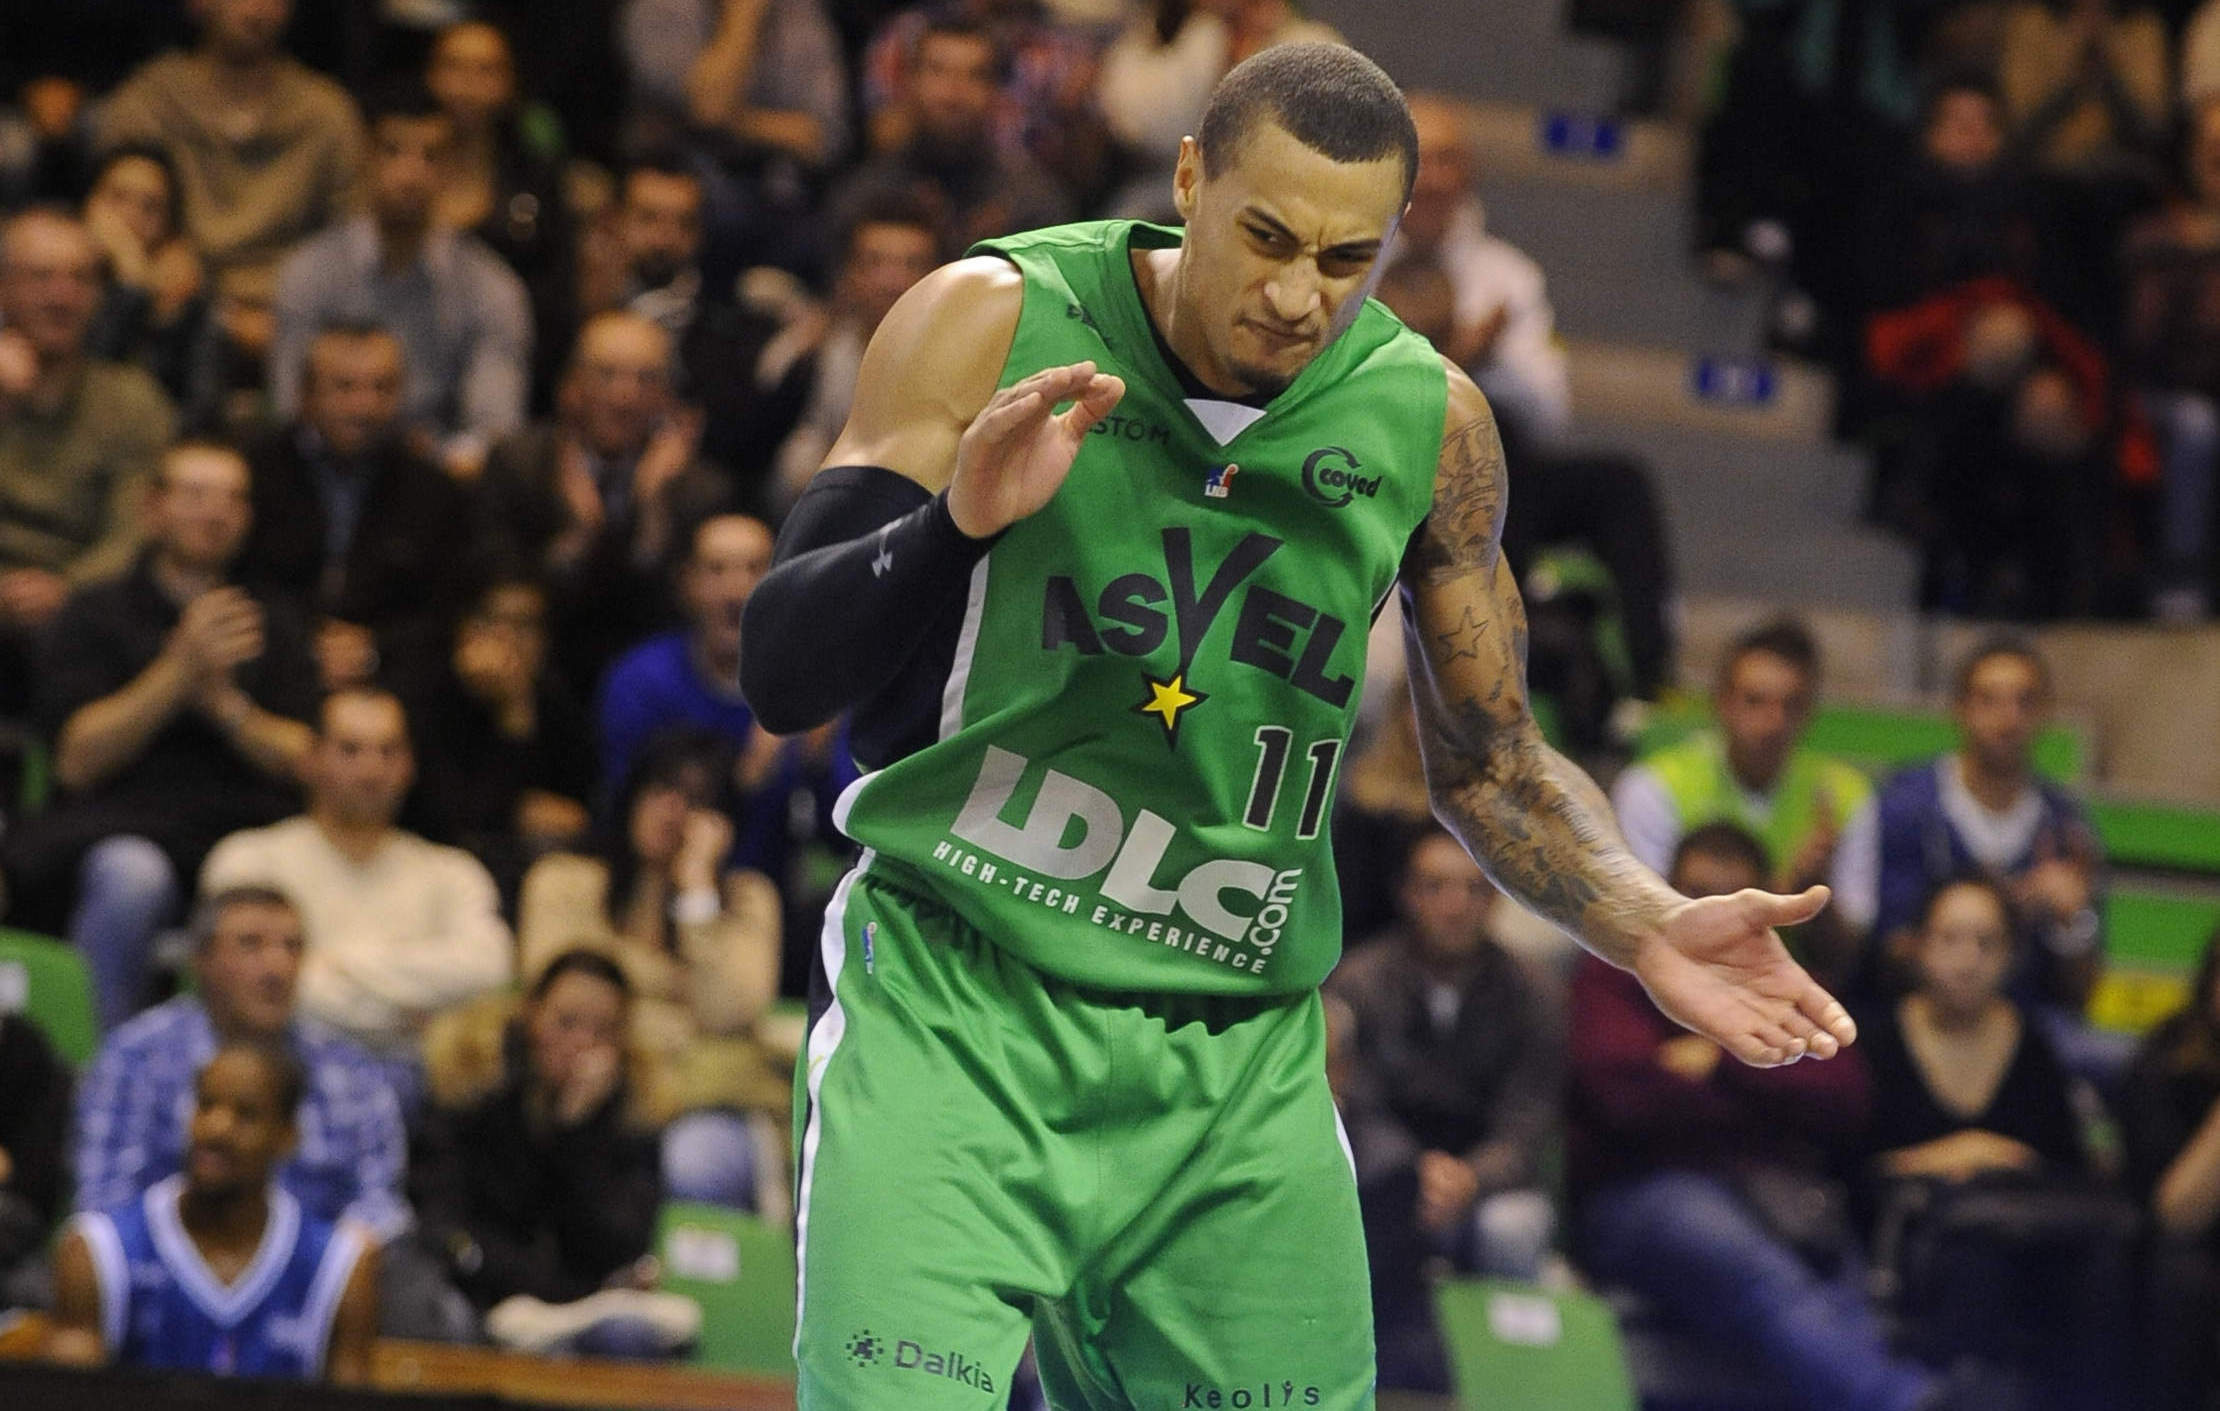 Match Basket Pro A ASVEL Lyon-Villeurbanne vs Bourg-en-Bresse en direct live streaming